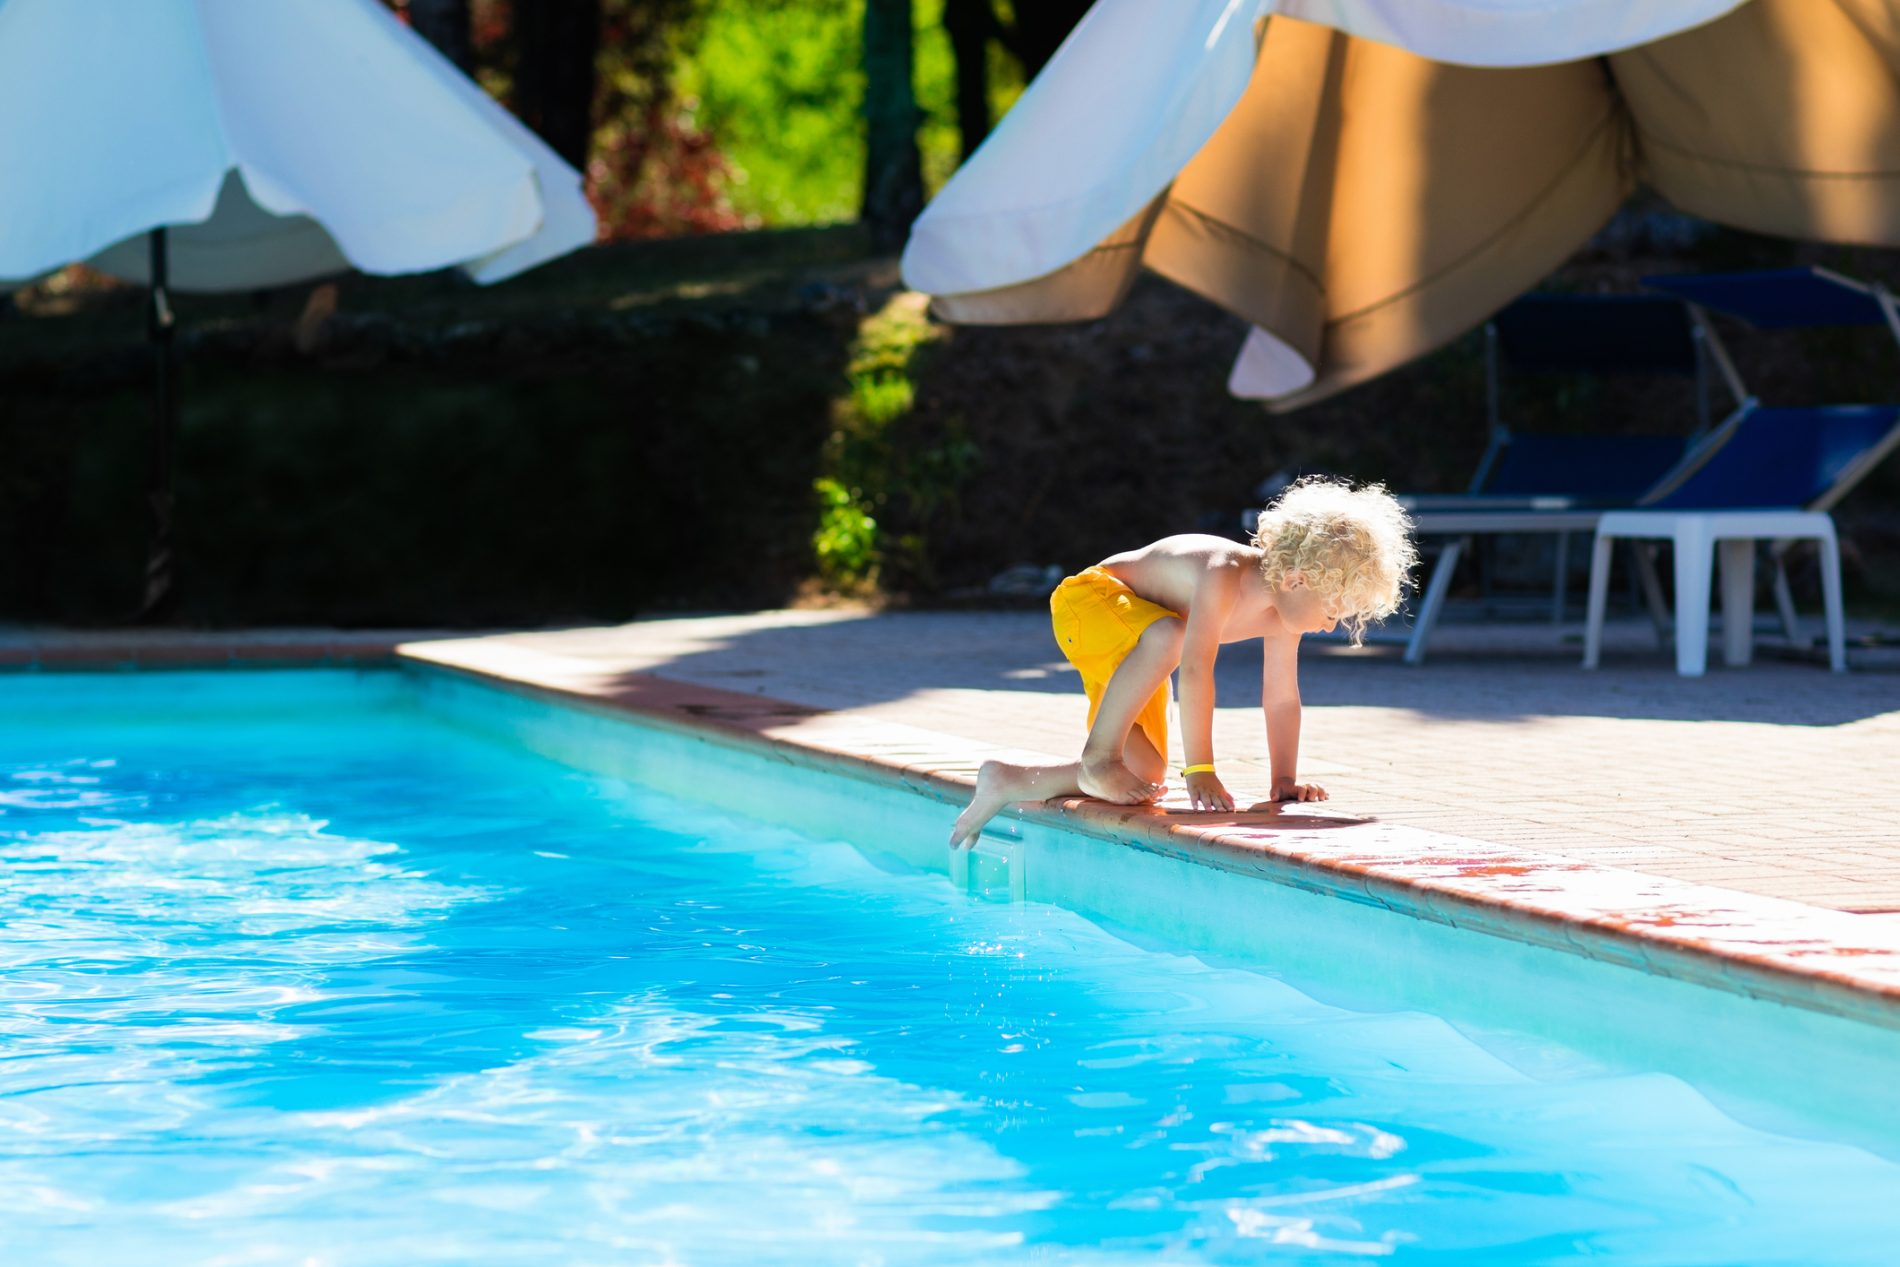 KEEP YOUR SWIMMING POOL SAFE THIS SUMMER